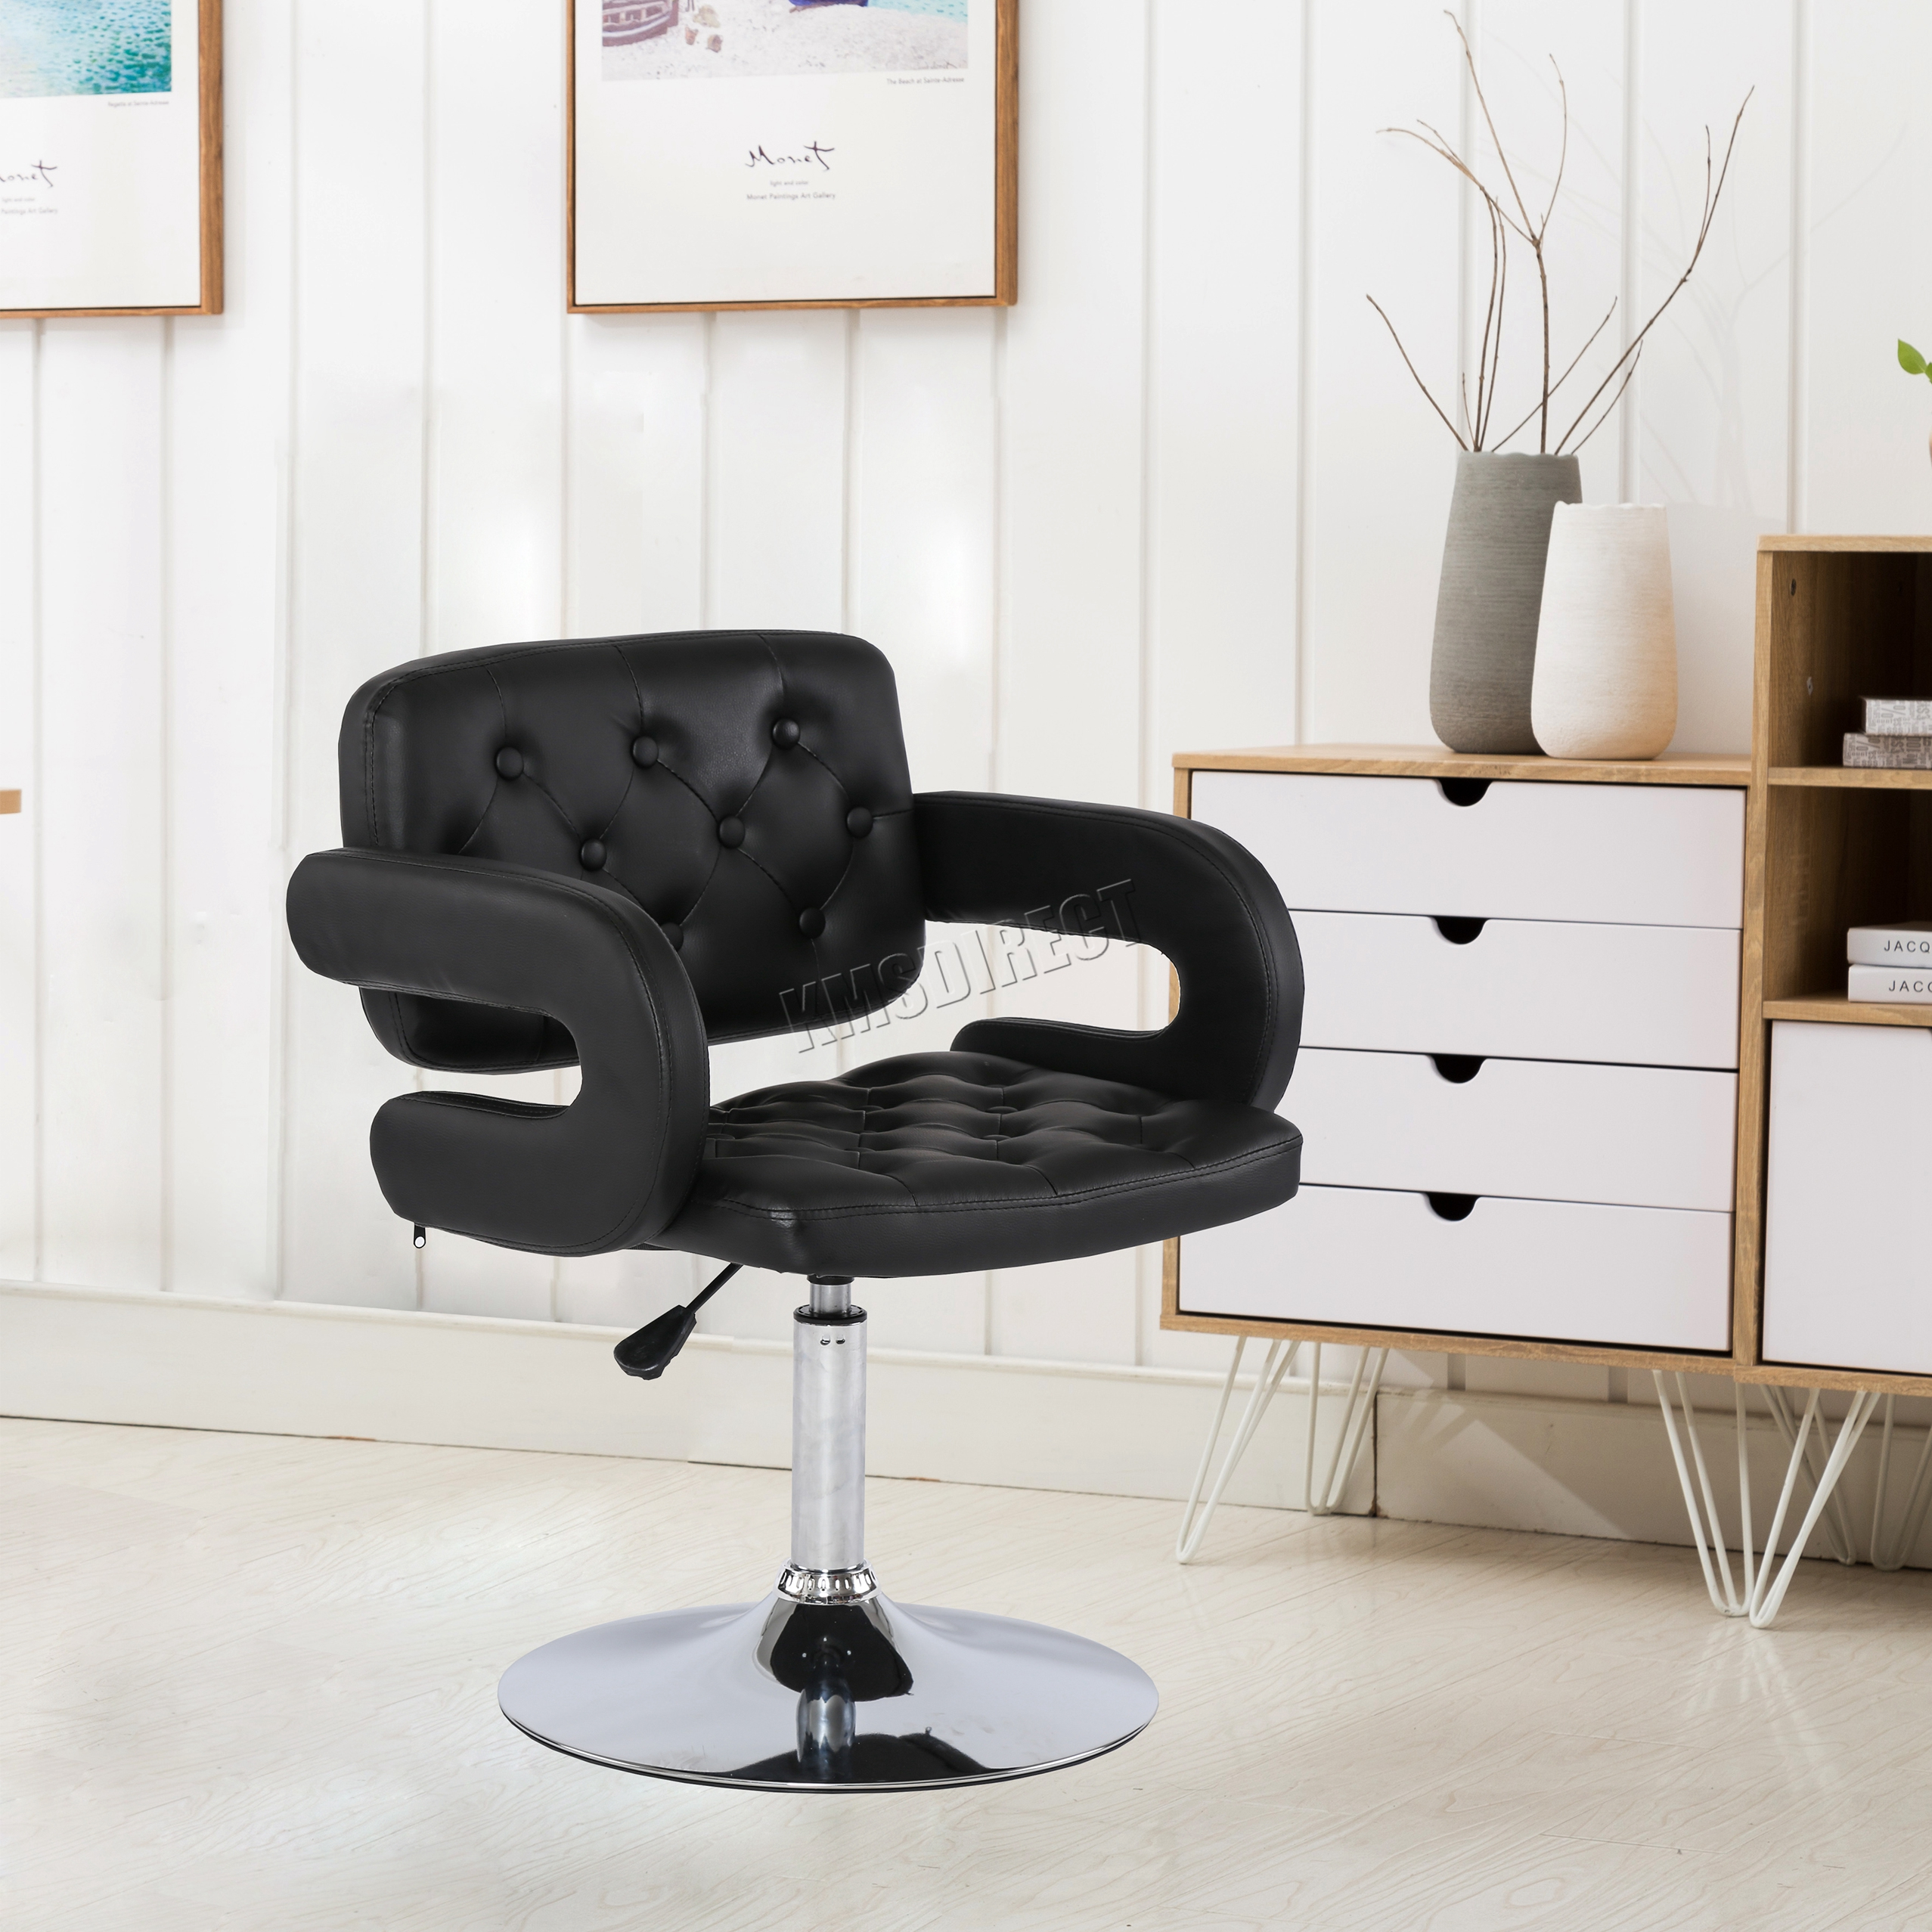 modern beauty salon furniture. WestWood-Beauty-Salon-Chair-Barber-Hairdressing-Hair-Cut- Modern Beauty Salon Furniture M